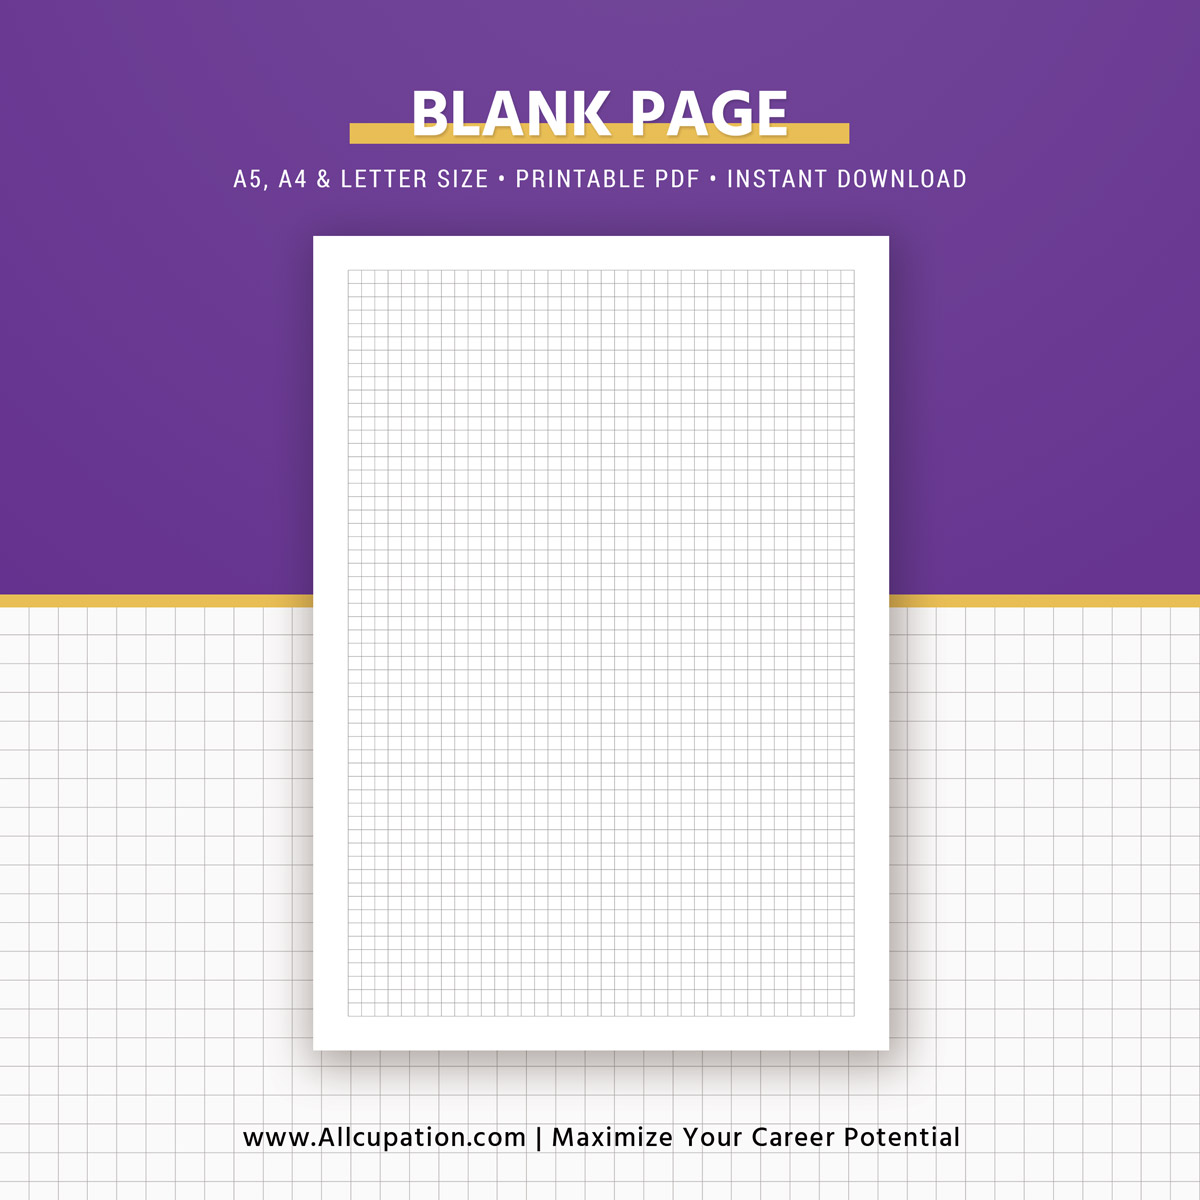 picture relating to Blank Planner titled Printable Blank Planner, Blank Webpages, Sq. Grid, Dominated, Planner Inserts, A5, A4, Letter, Planner Refills, Planner Style and design, Most straightforward Planner, Prompt